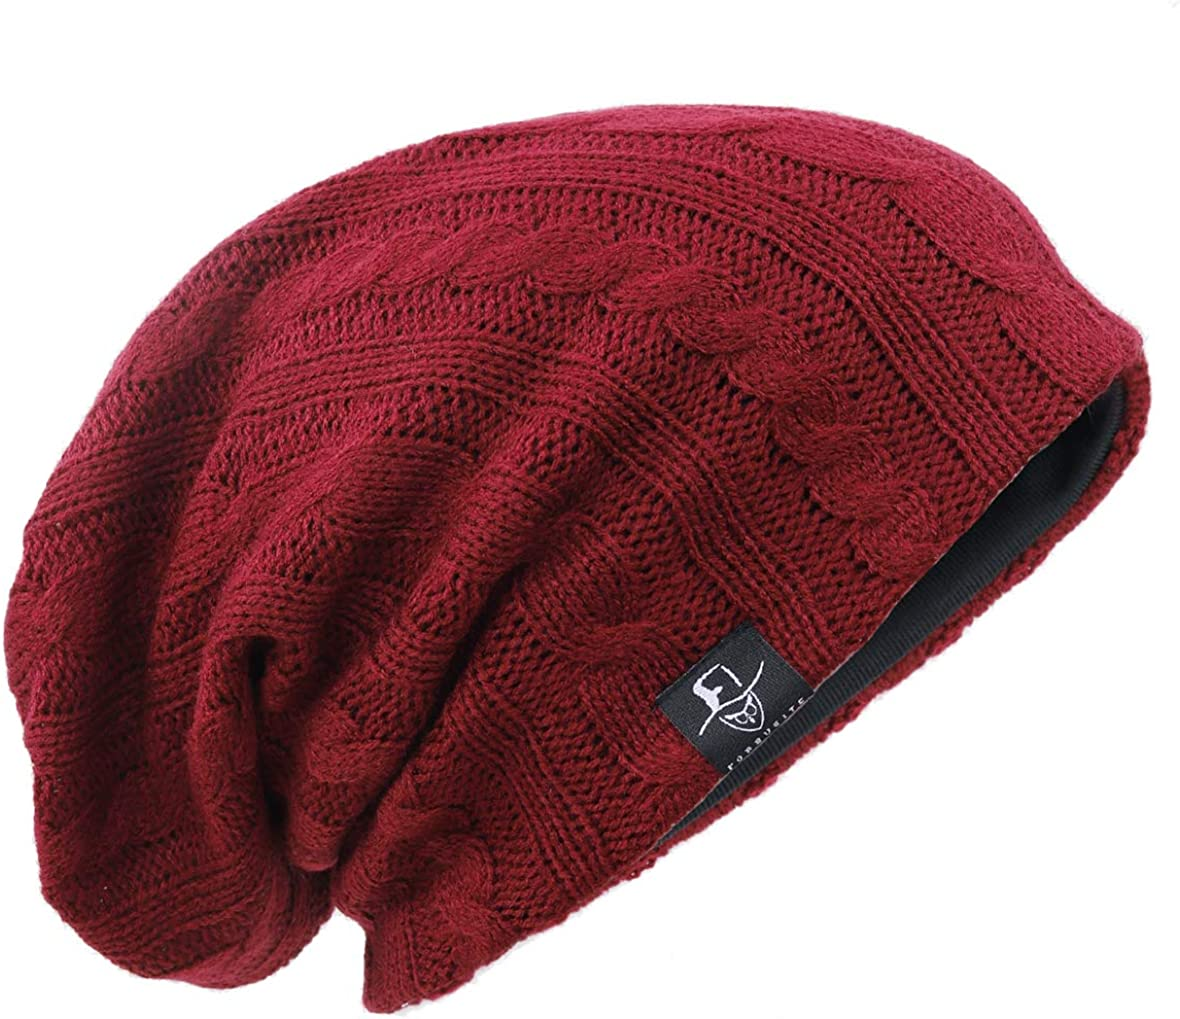 Oversized Baggy Skull Cap Winter Warm Ski Hat B305 Ruphedy Mens Slouch Knit Beanie